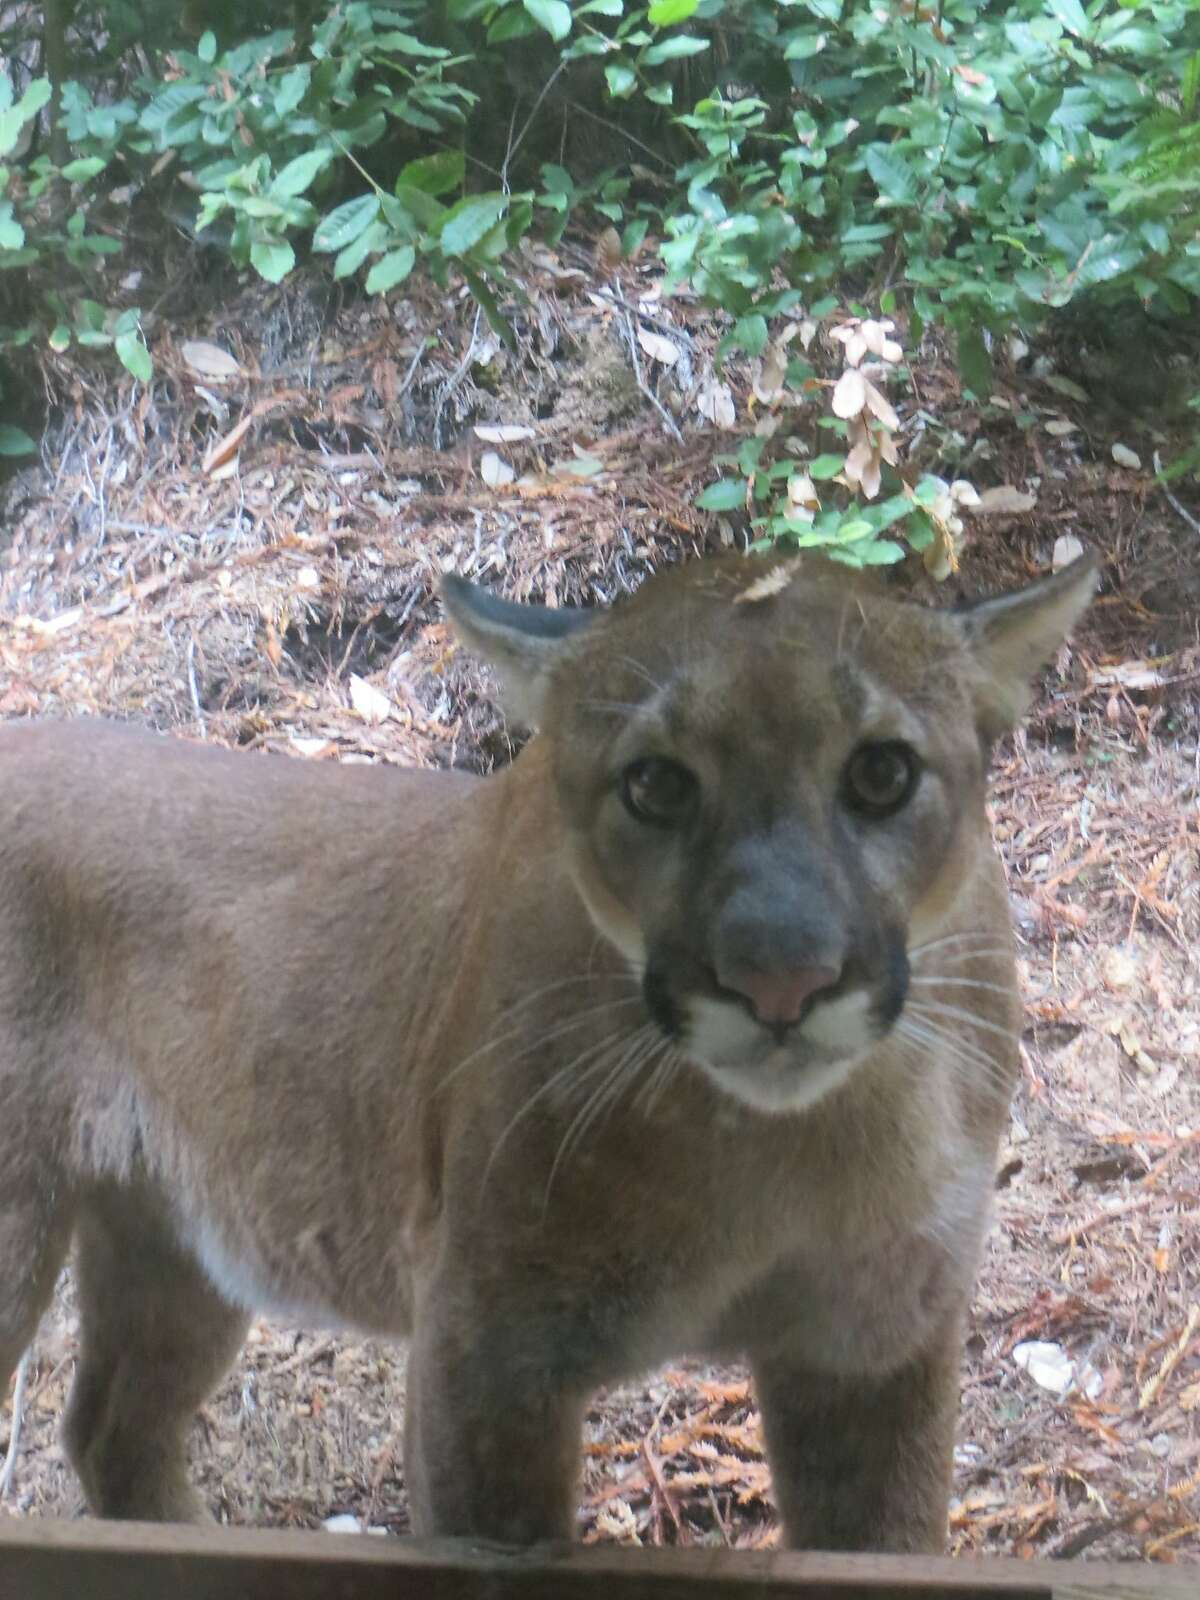 While at a desk at her home in Gualala in Mendocino County, Cece Case heard a noise, turned and found this mountain lion staring at her through the window. Cece believes the lion may have hunting her house cats. File photo taken on Sept. 12, 2014.